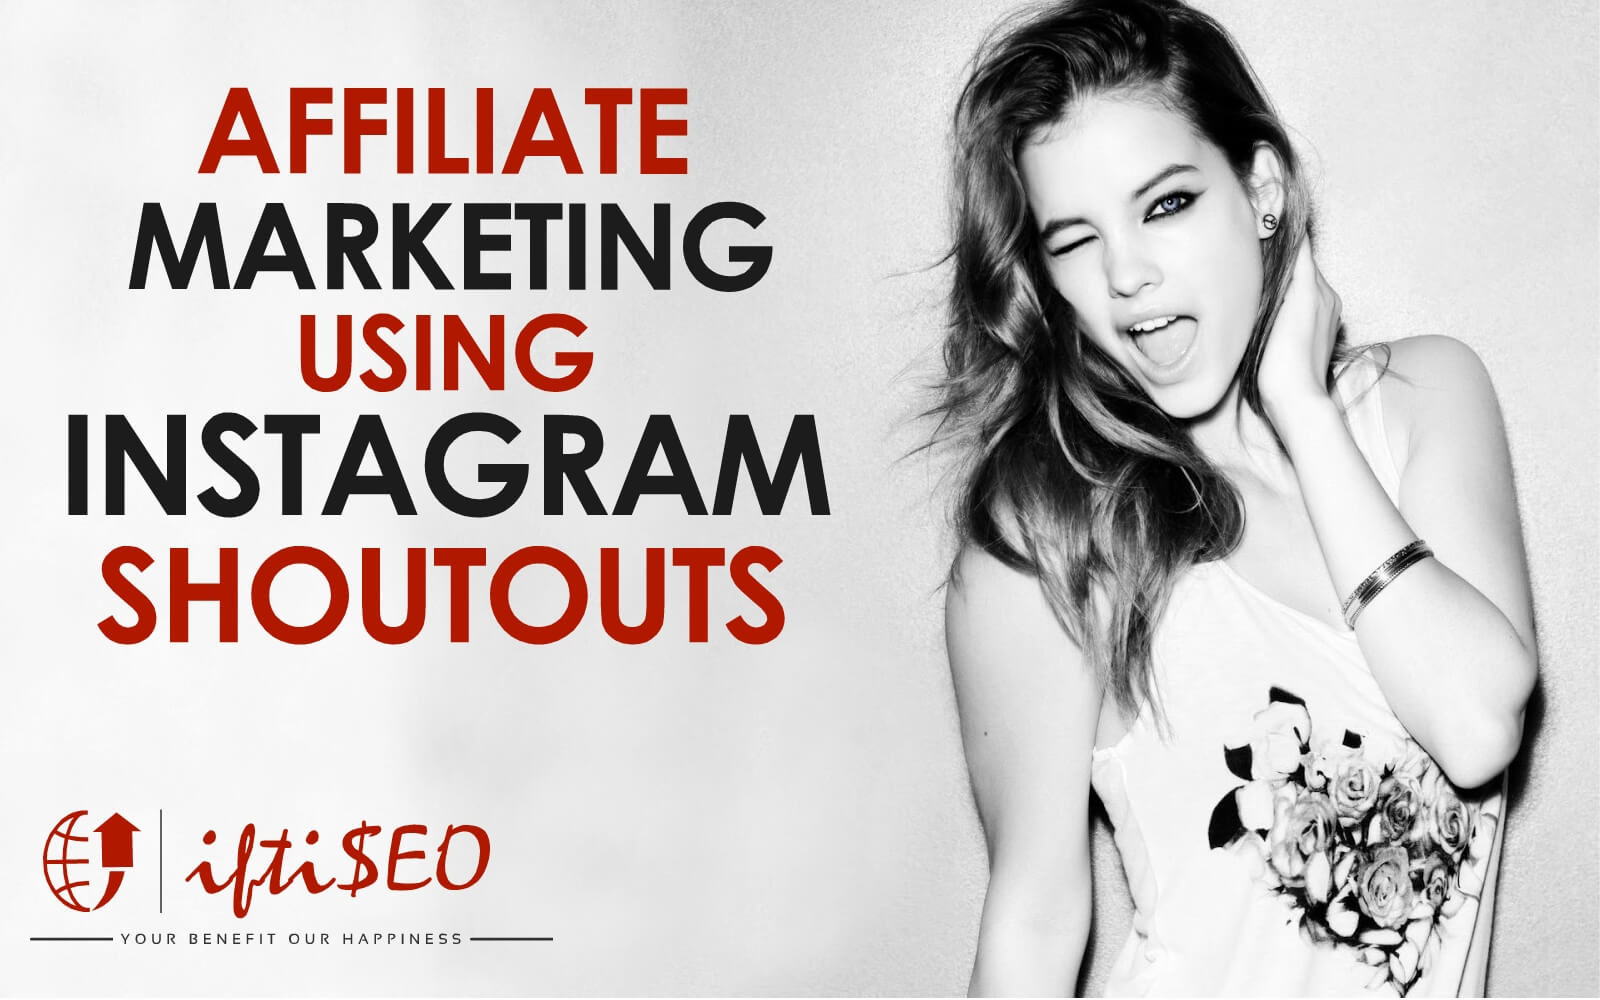 How To Make Money From Affiliate Marketing Using Instagram Shoutouts